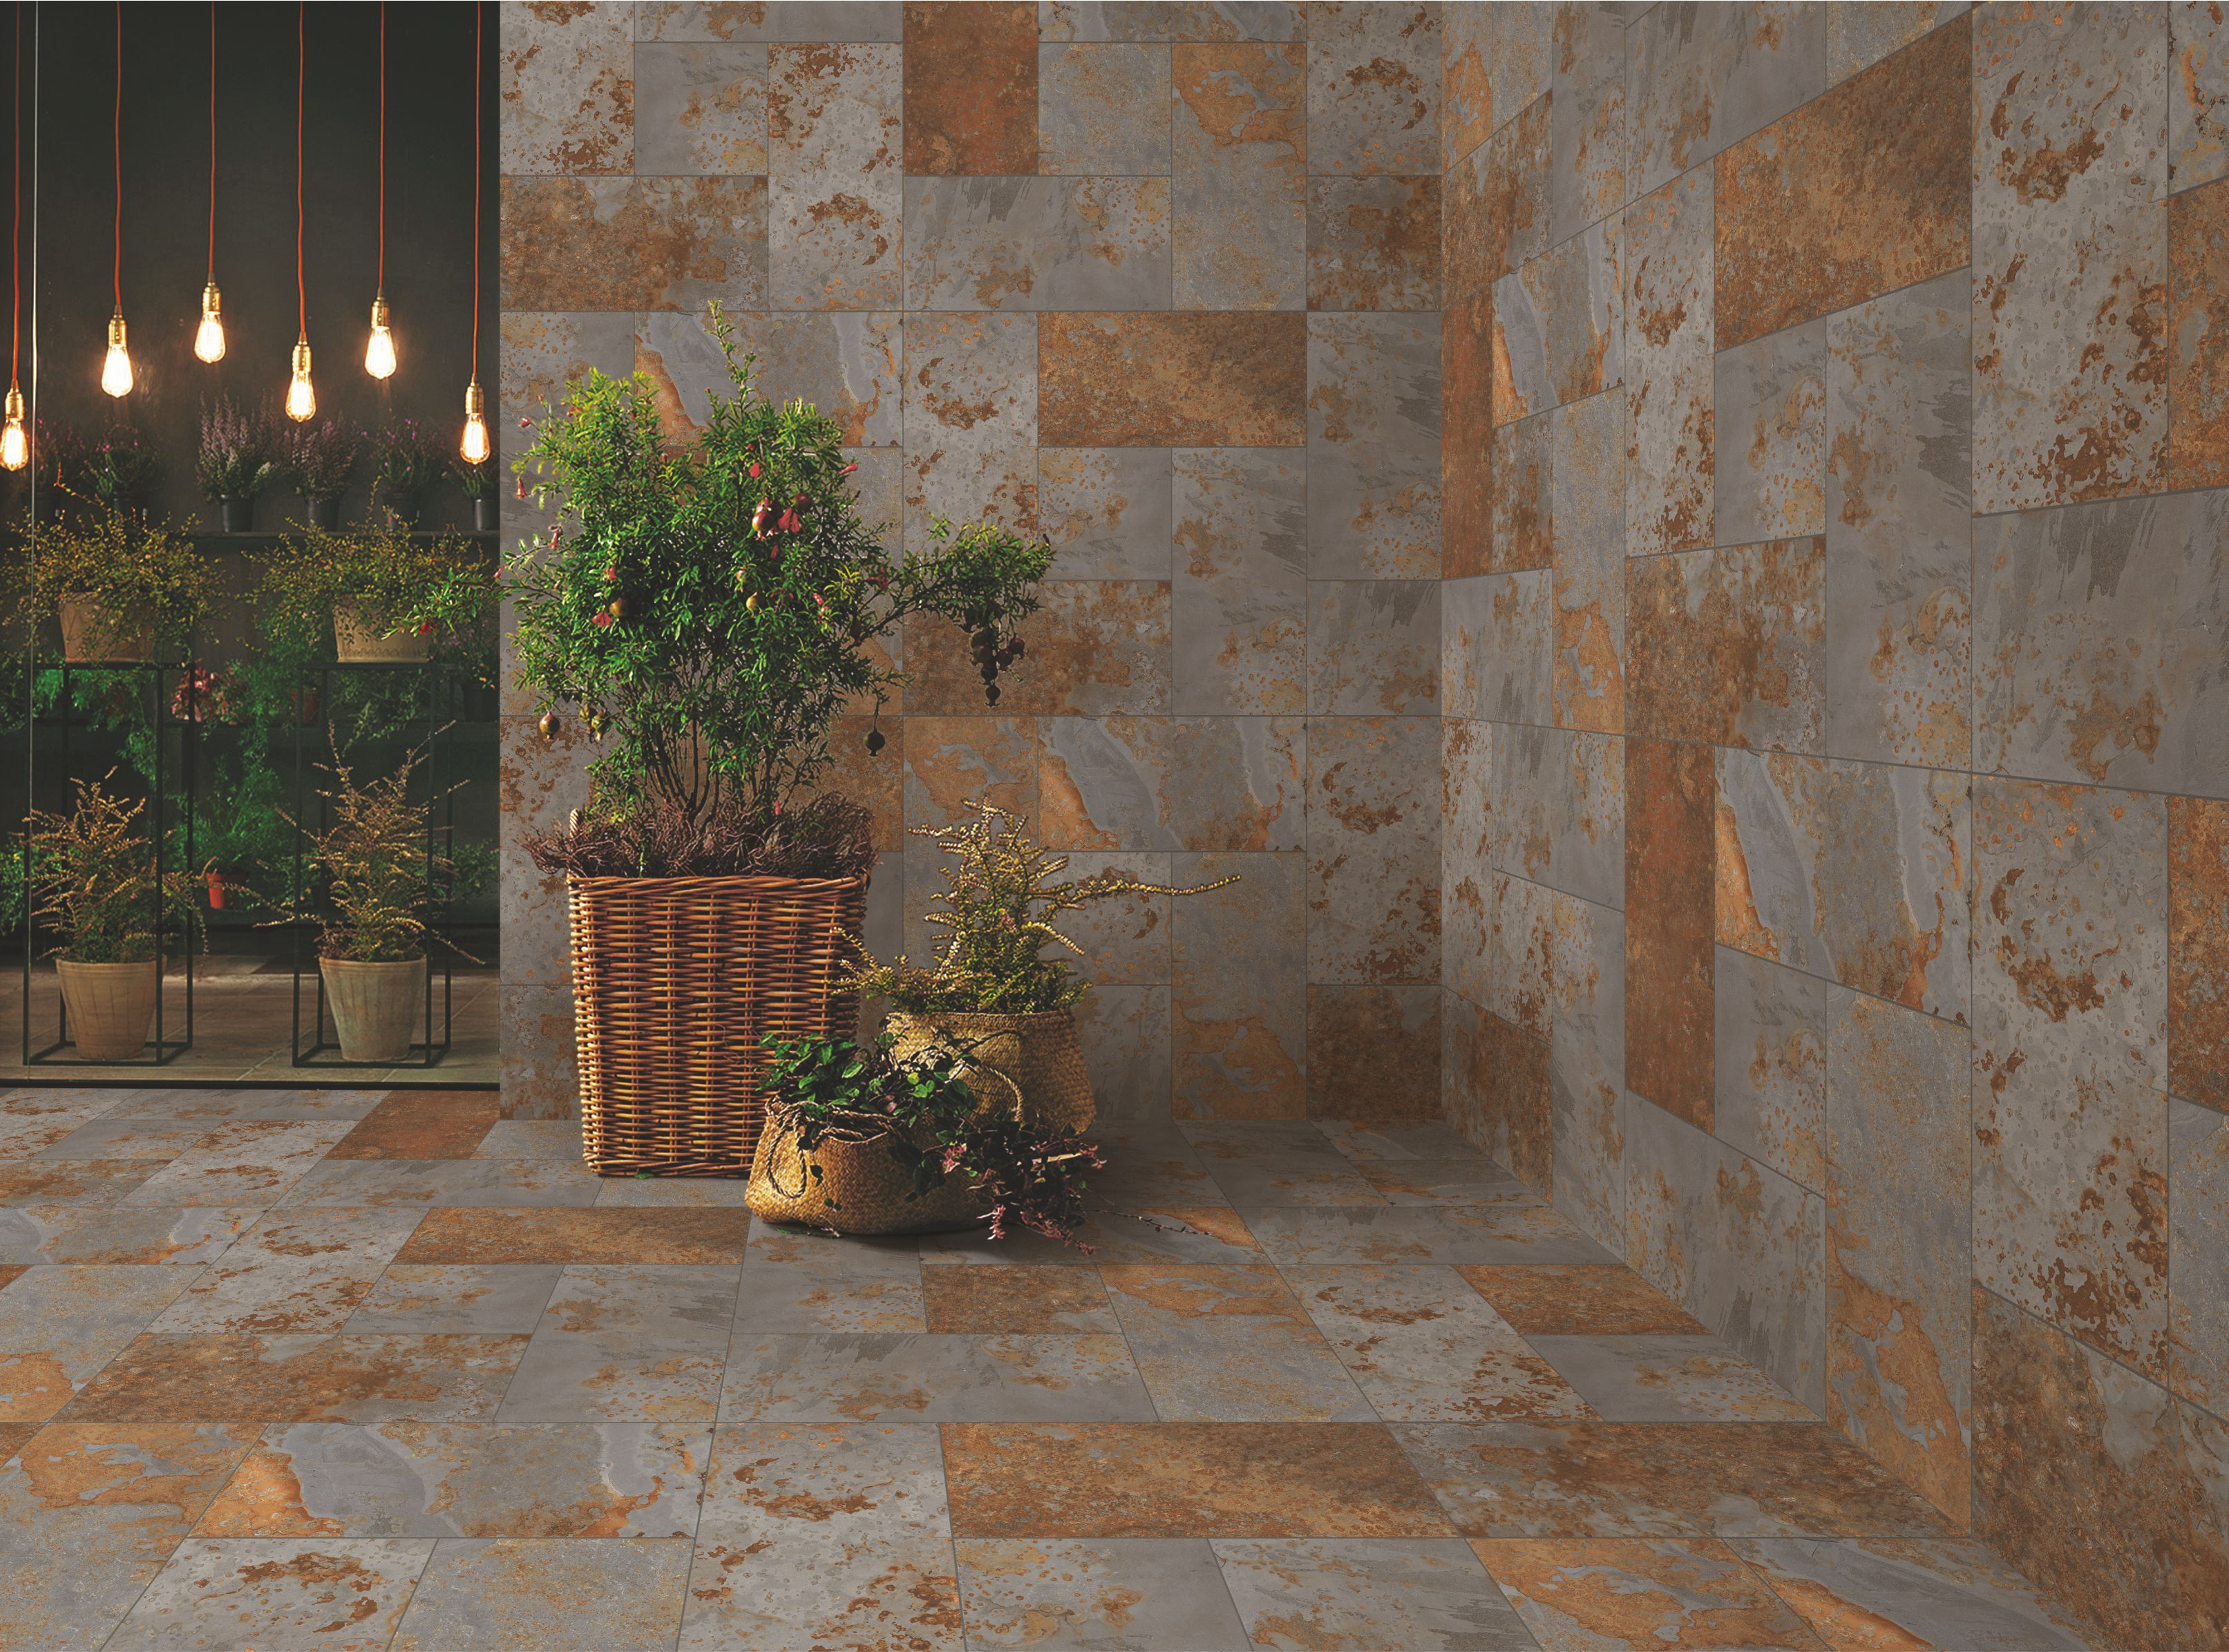 Product lavagna beige size 398x398mm 398x800mm outdoor tiles outdoor tiles dailygadgetfo Image collections